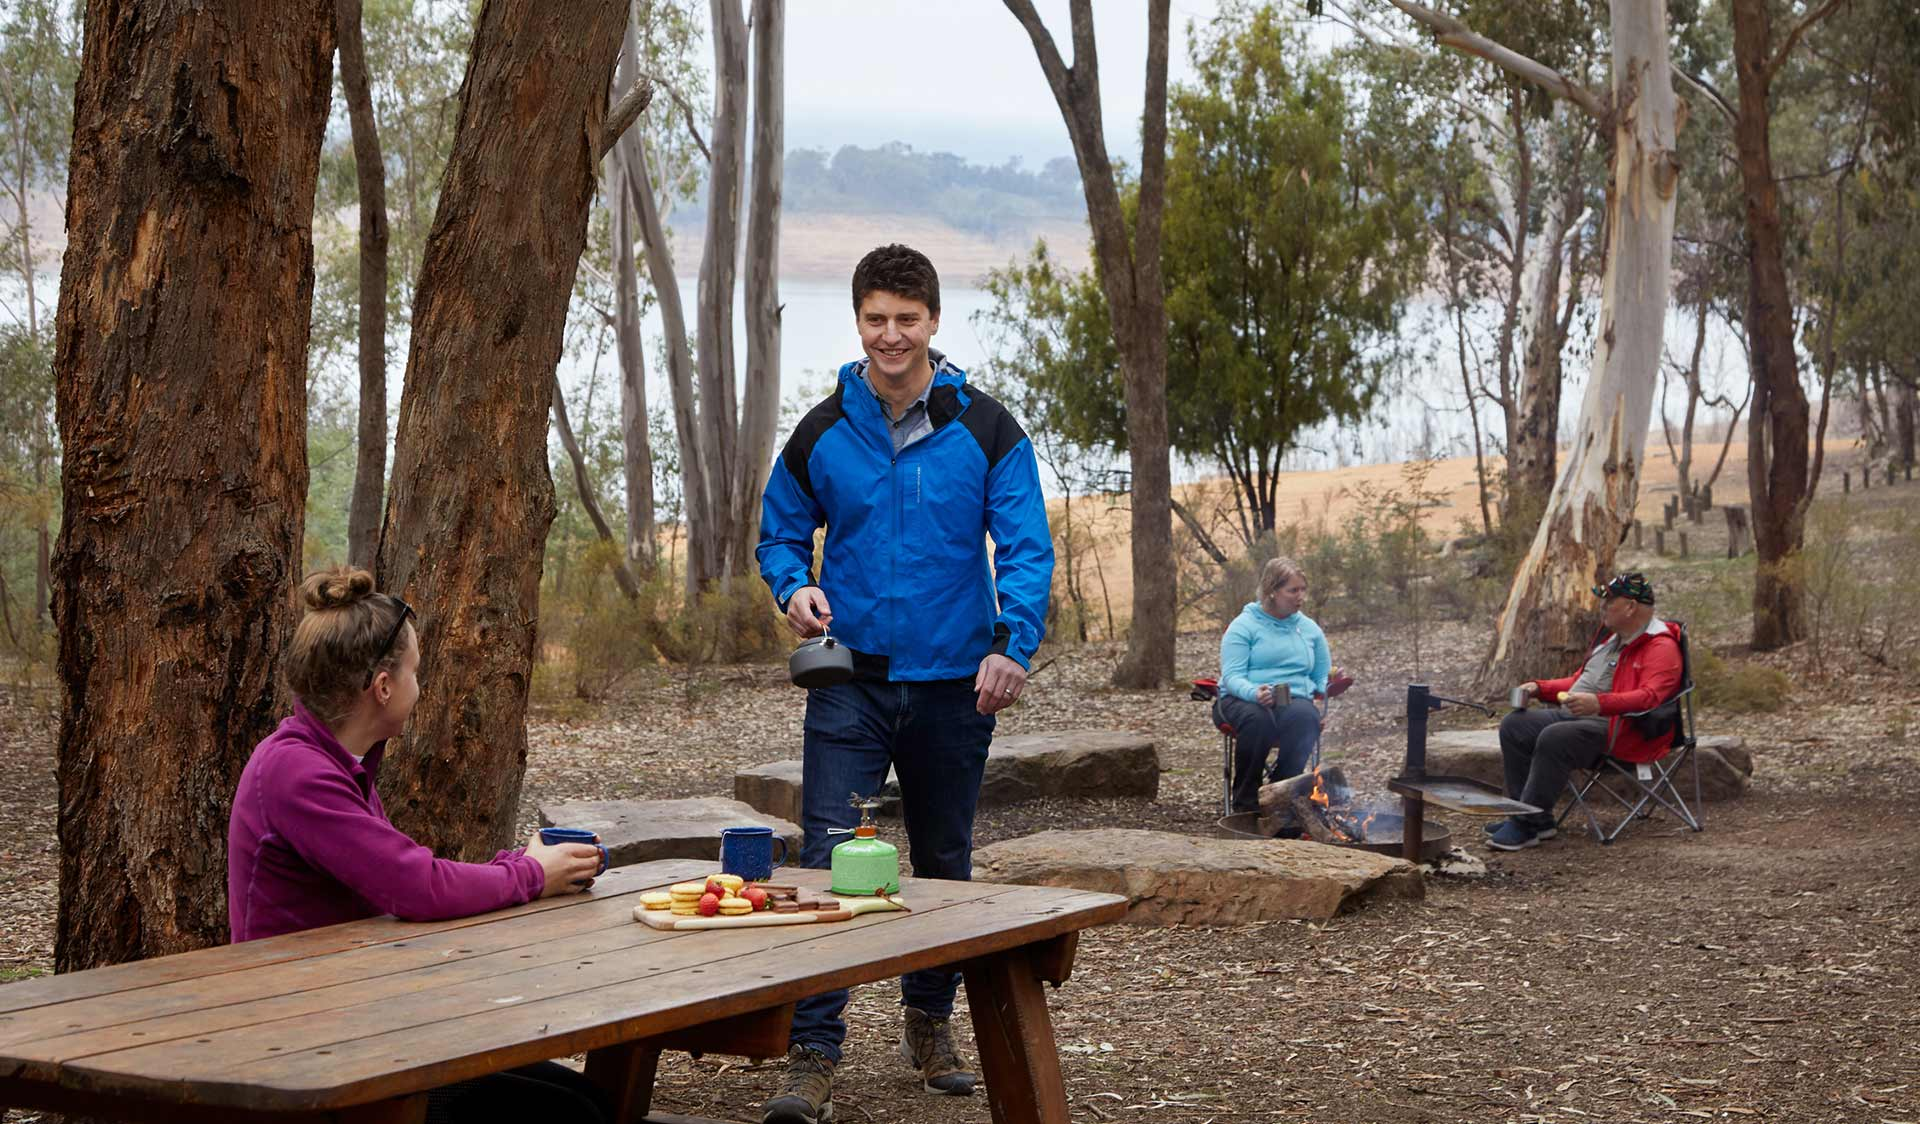 A man brings a kettle to the picnic table where his partner is sitting, while an older couple sit around a campfire in the background.